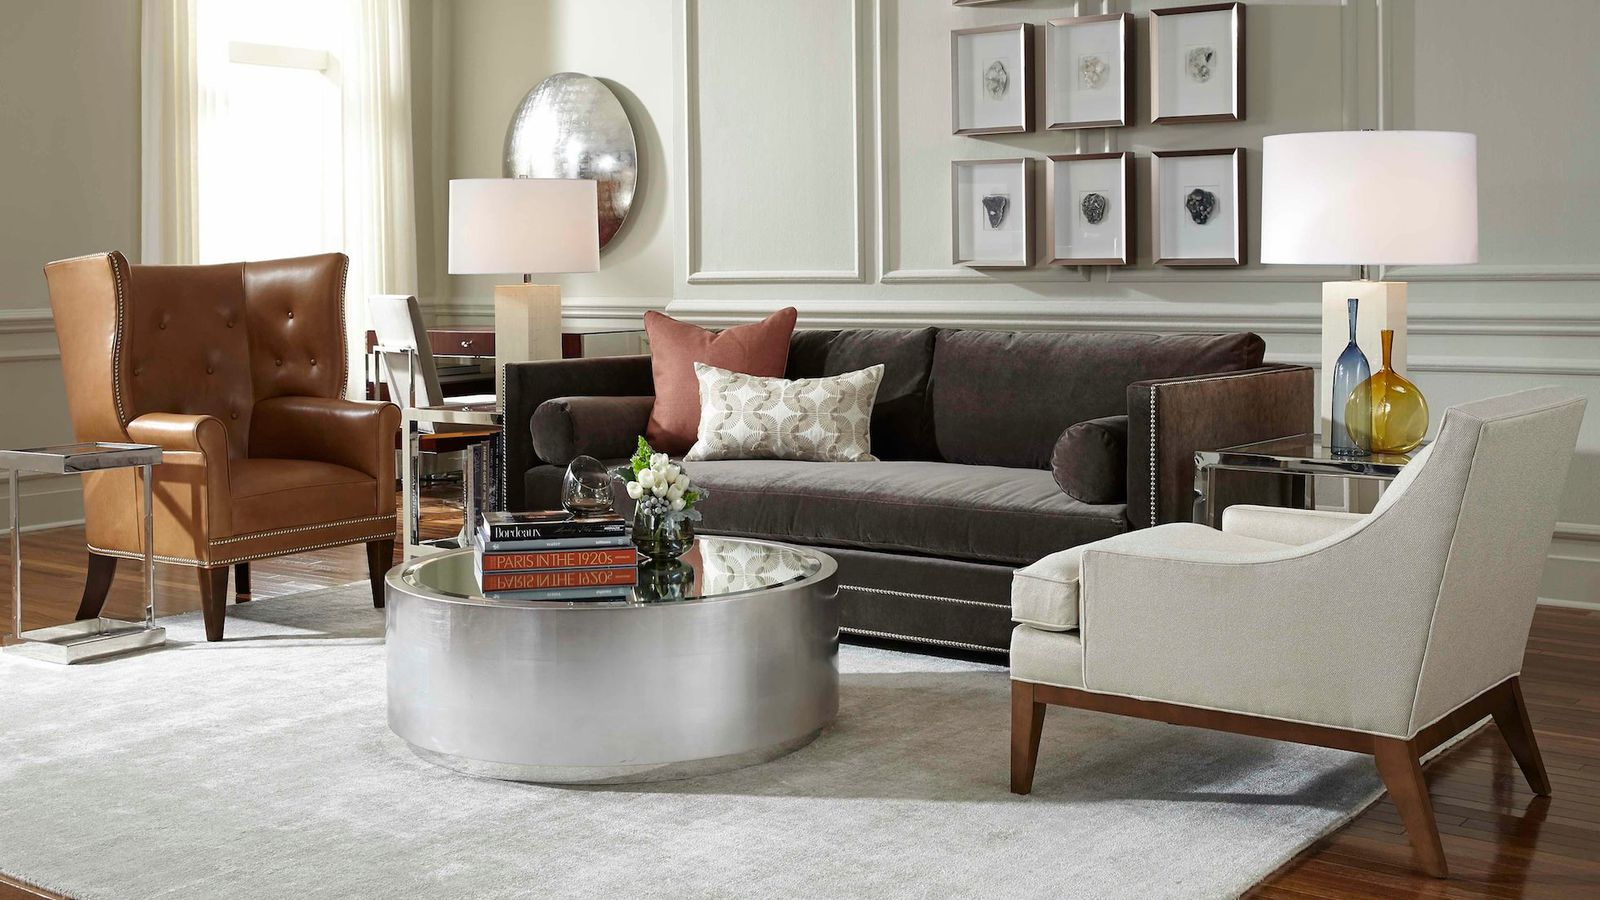 38 of miami 39 s best home goods and furniture stores 2015 for Good furniture stores